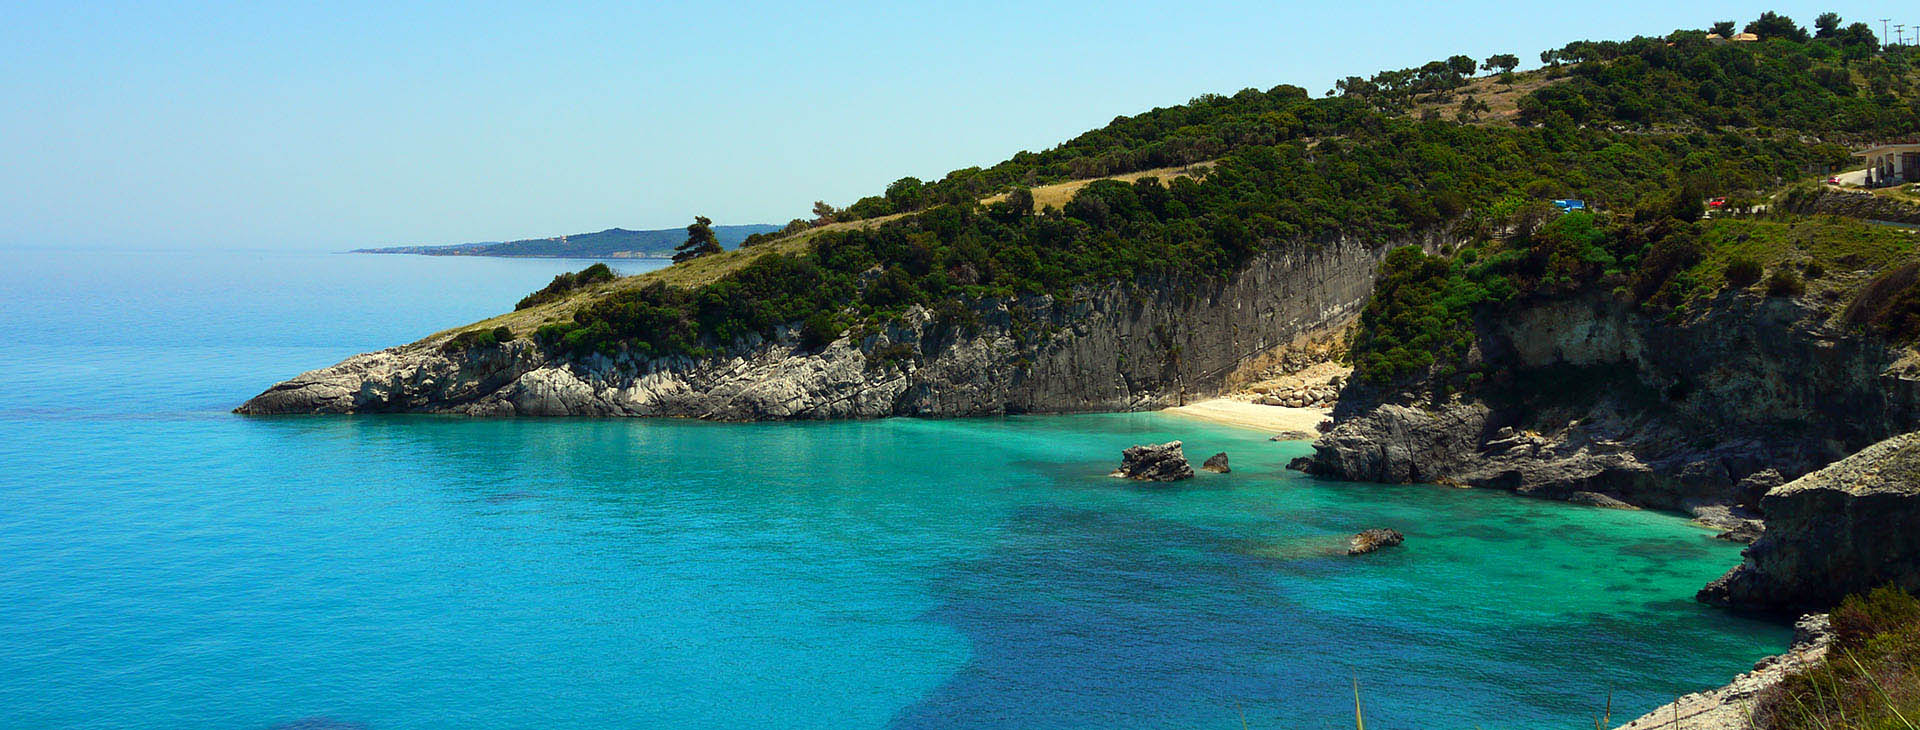 Beach at Zakynthos island